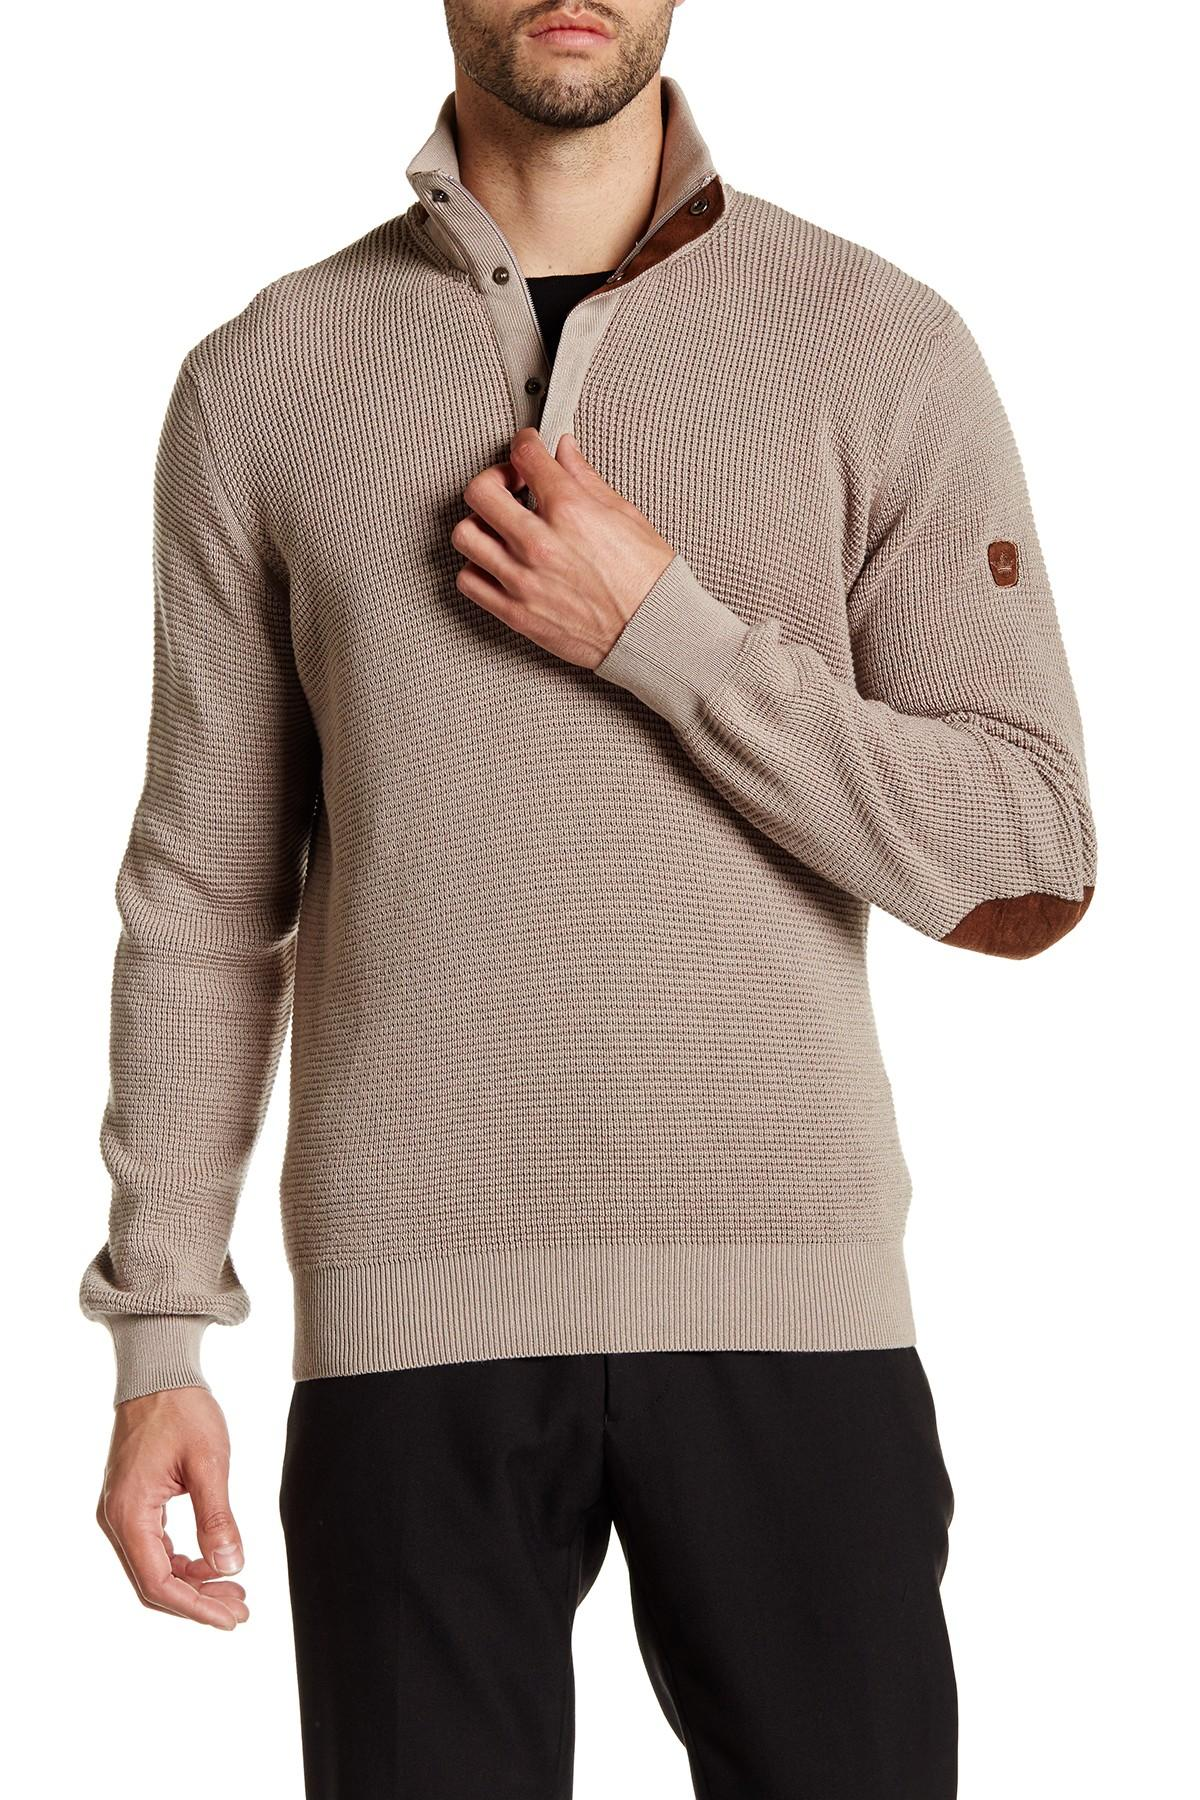 Nordstrom Mens Sweaters